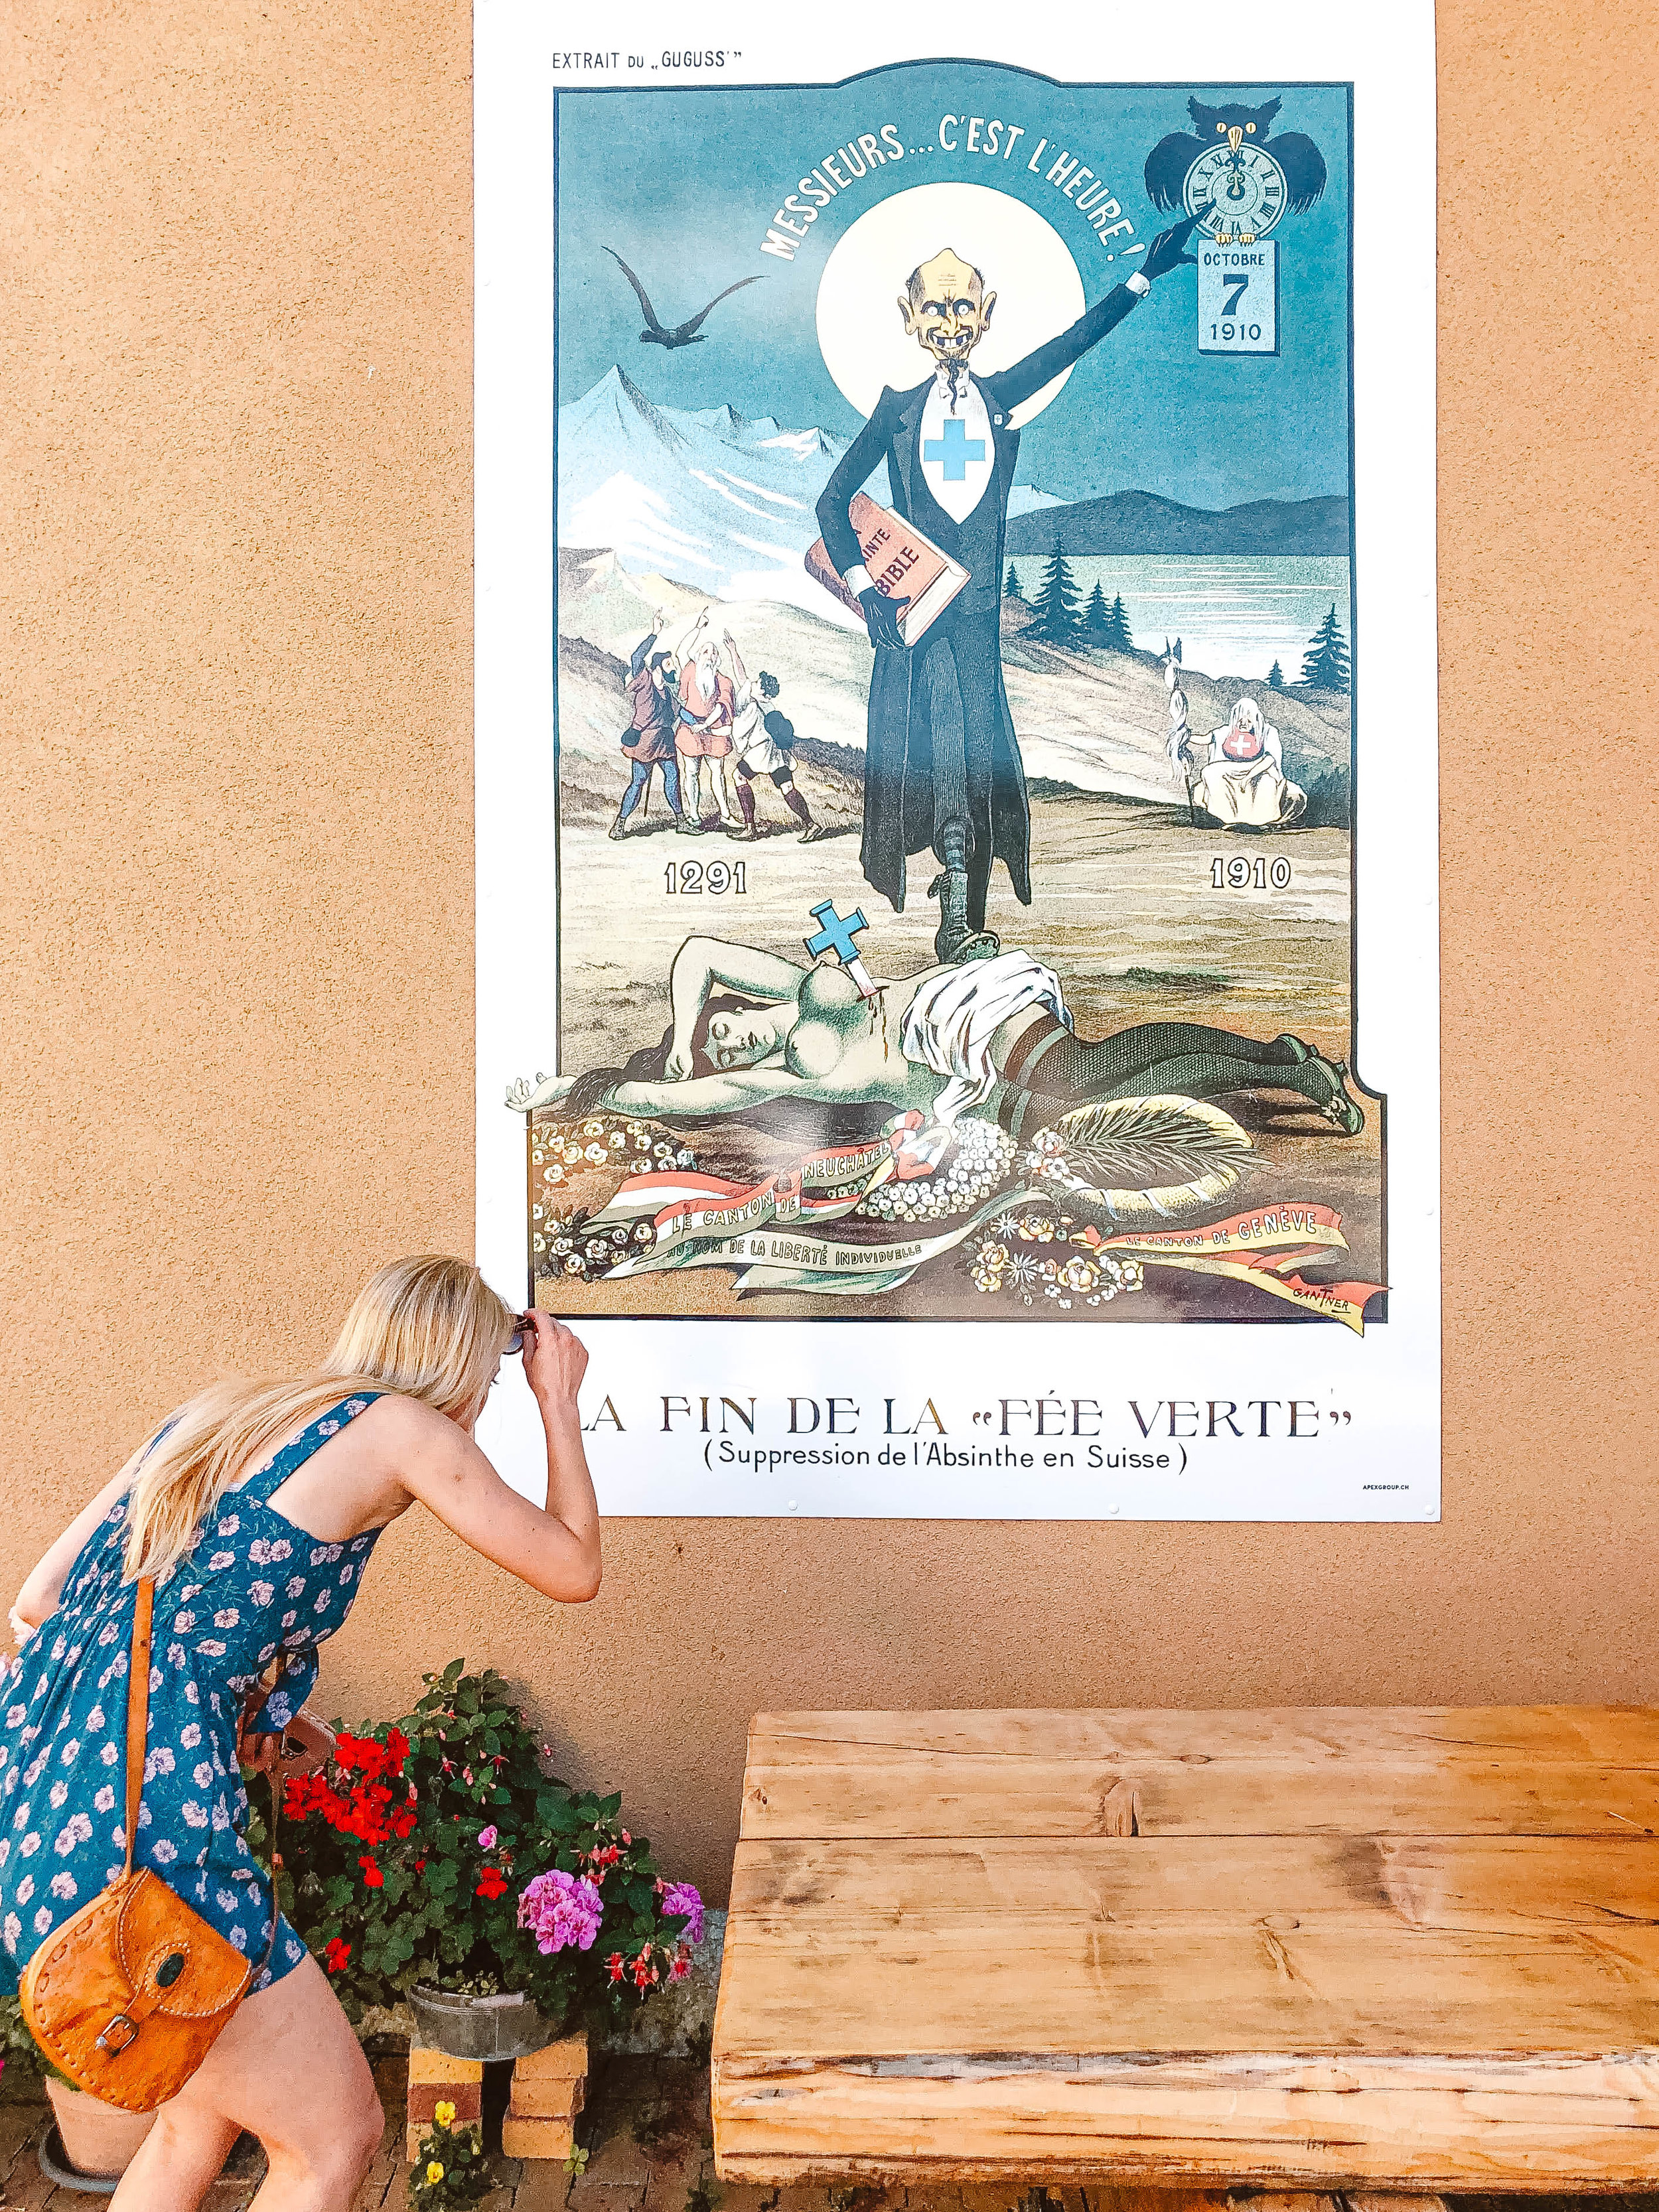 Poster banning absinthe that was printed in the newspaper, Môtiers, Switzerland